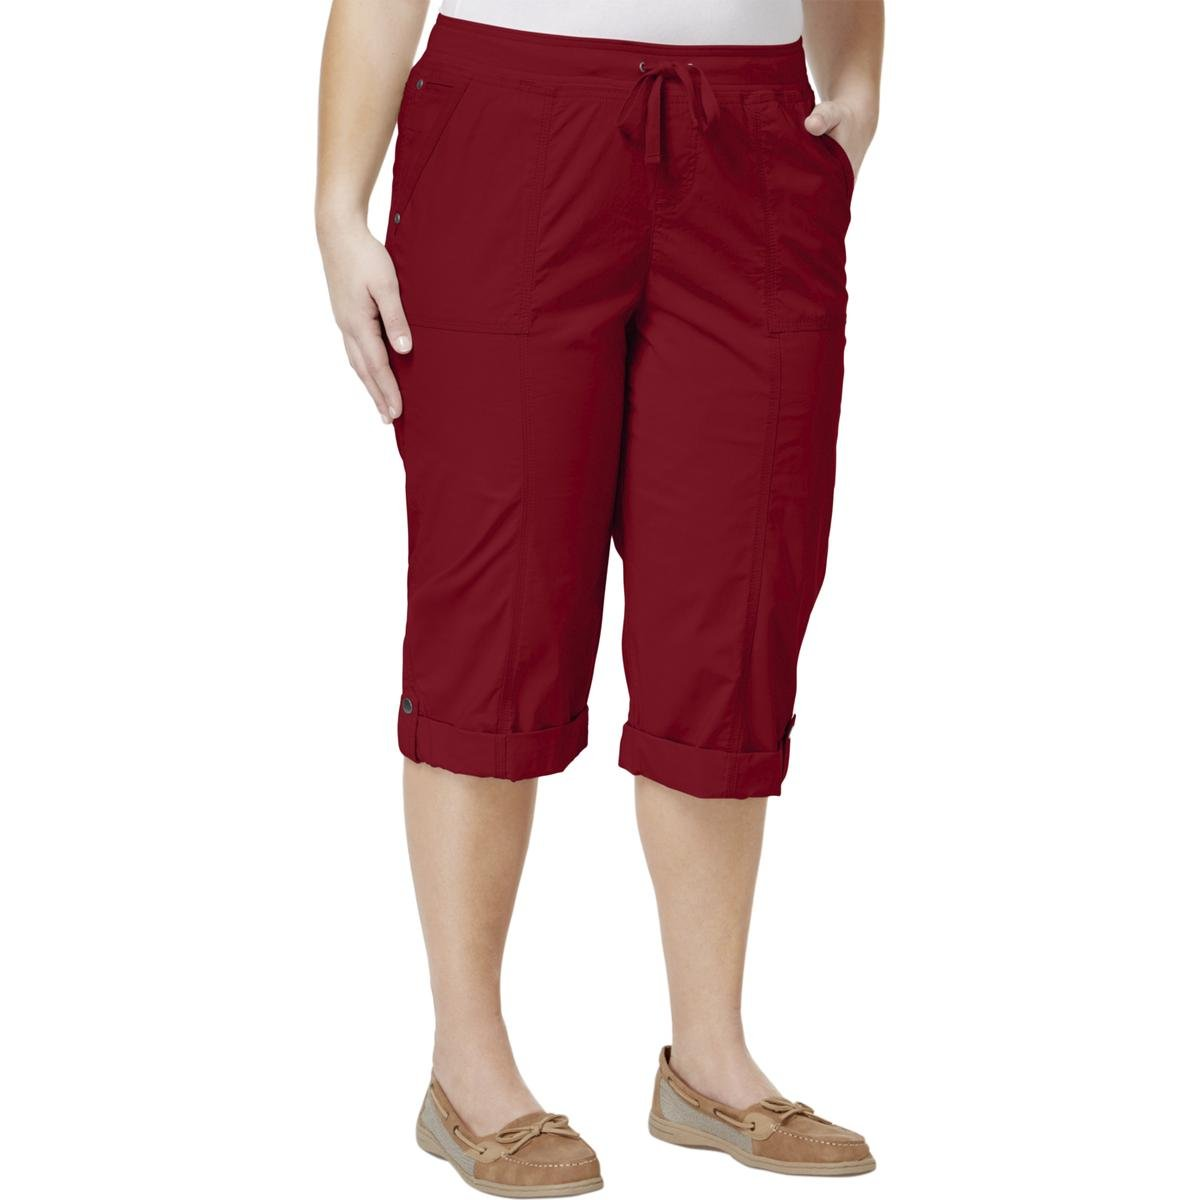 Style & Co. Womens Plus Flat Front Pull On Skimmers Red 22W